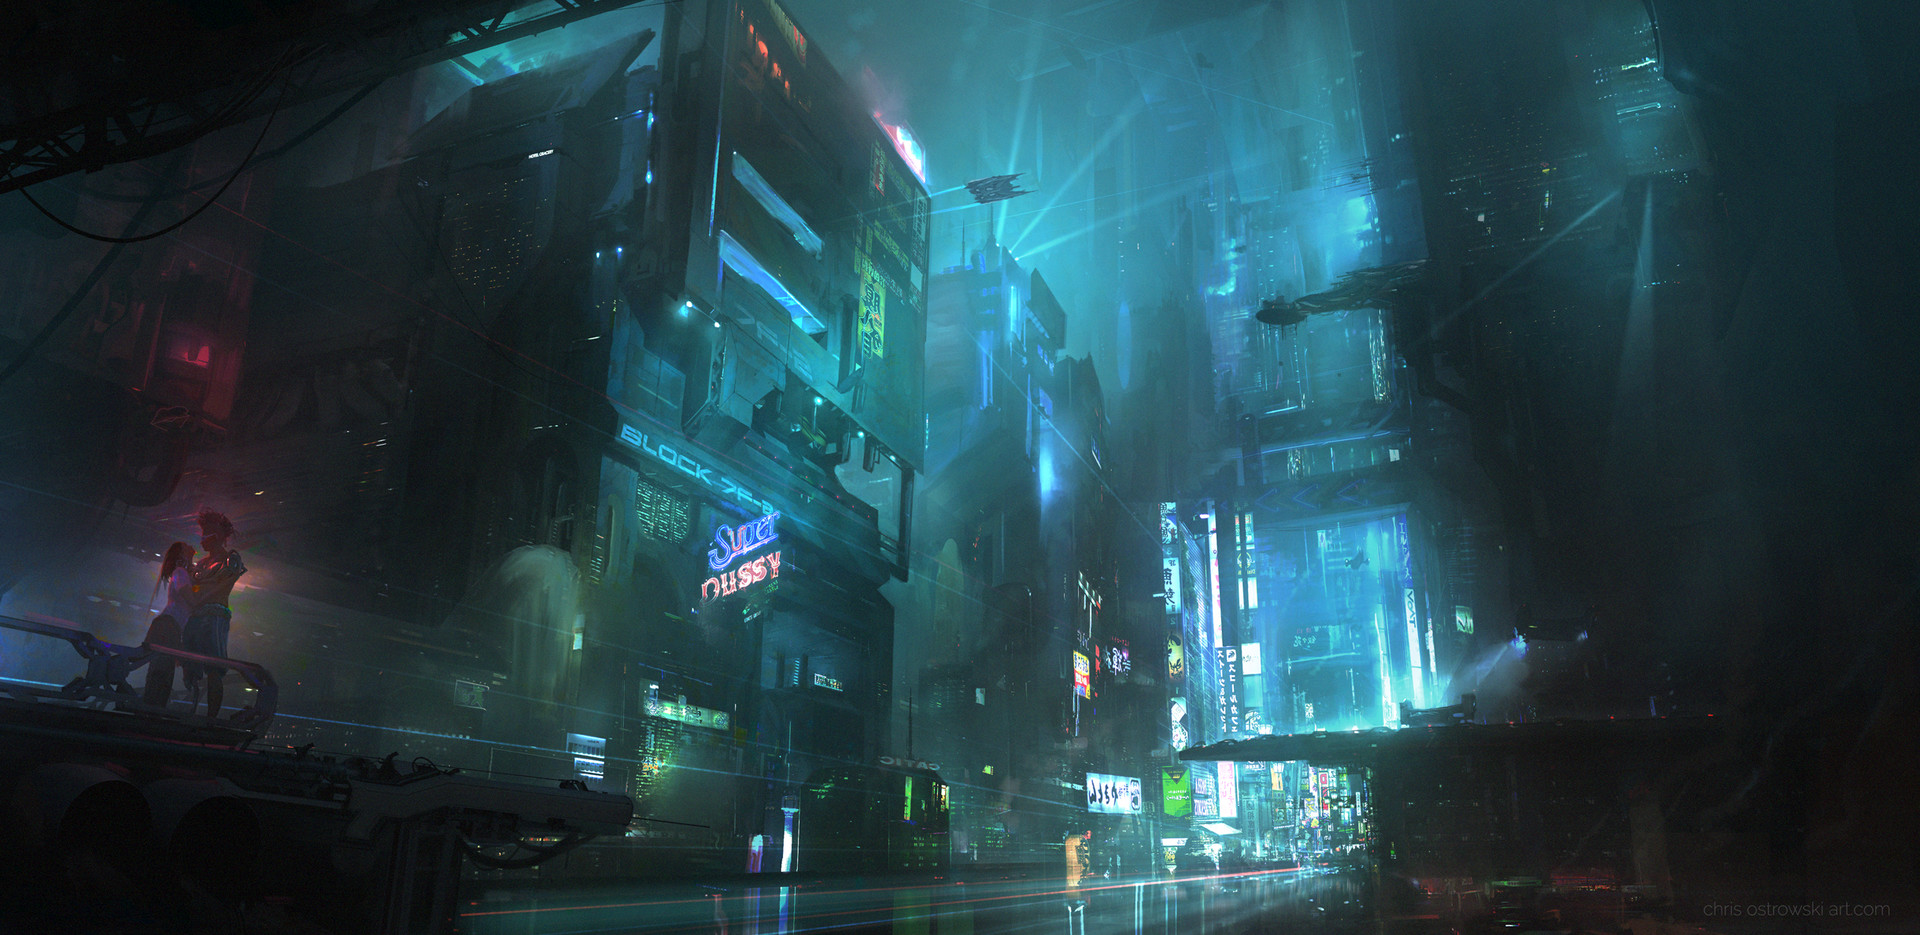 The Impressive Digital Art of Chris Ostrowski